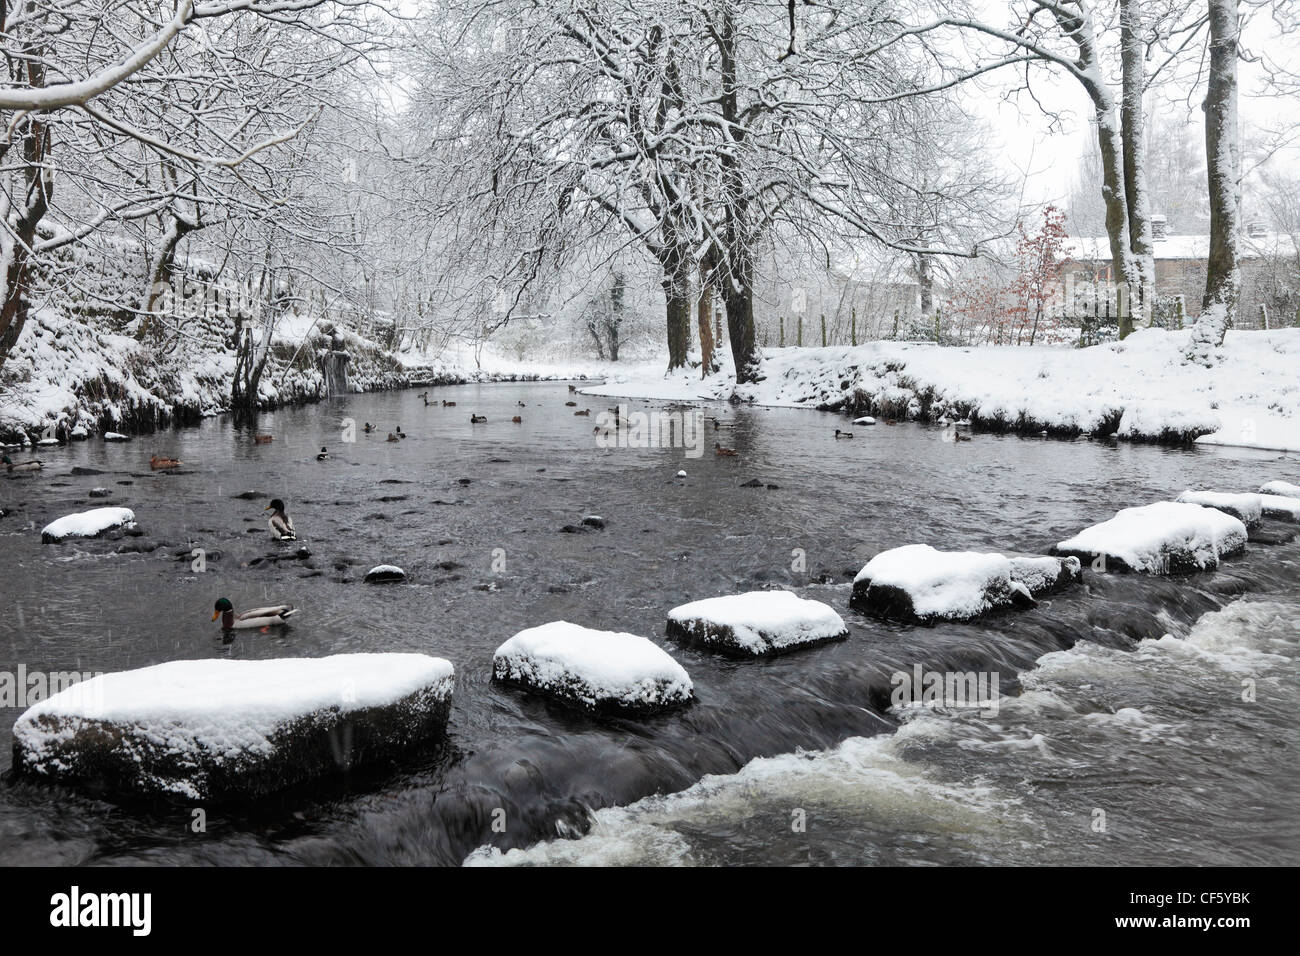 Stepping stones covered in snow leading across a river. Stock Photo